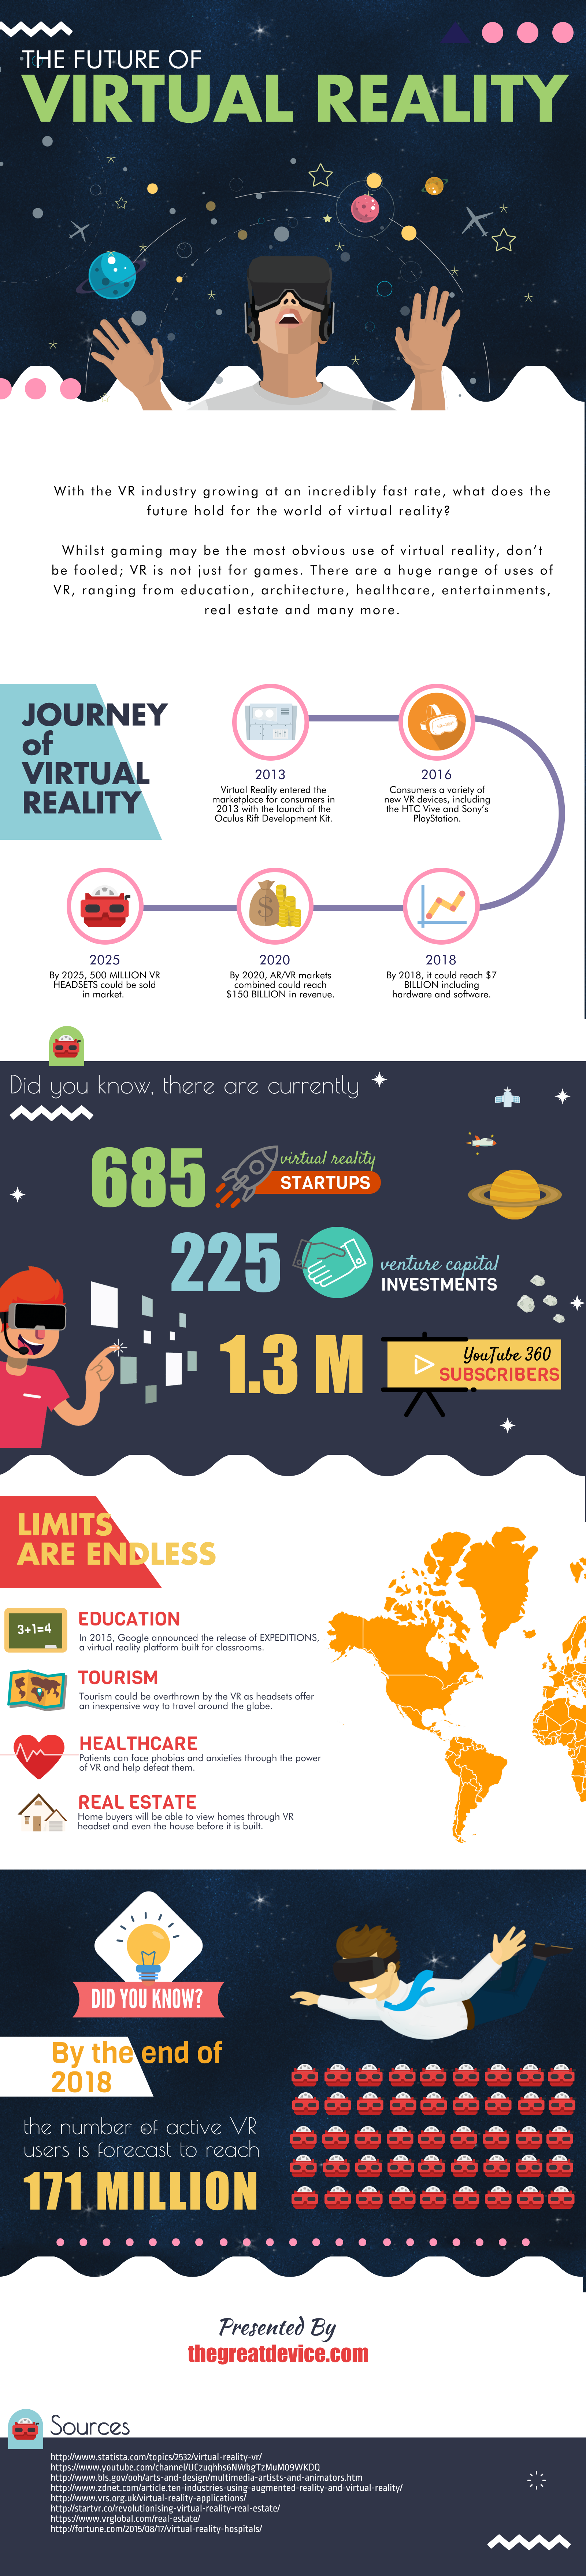 THE FUTURE OF VIRTUAL REALITY [ INFOGRAPHIC ]